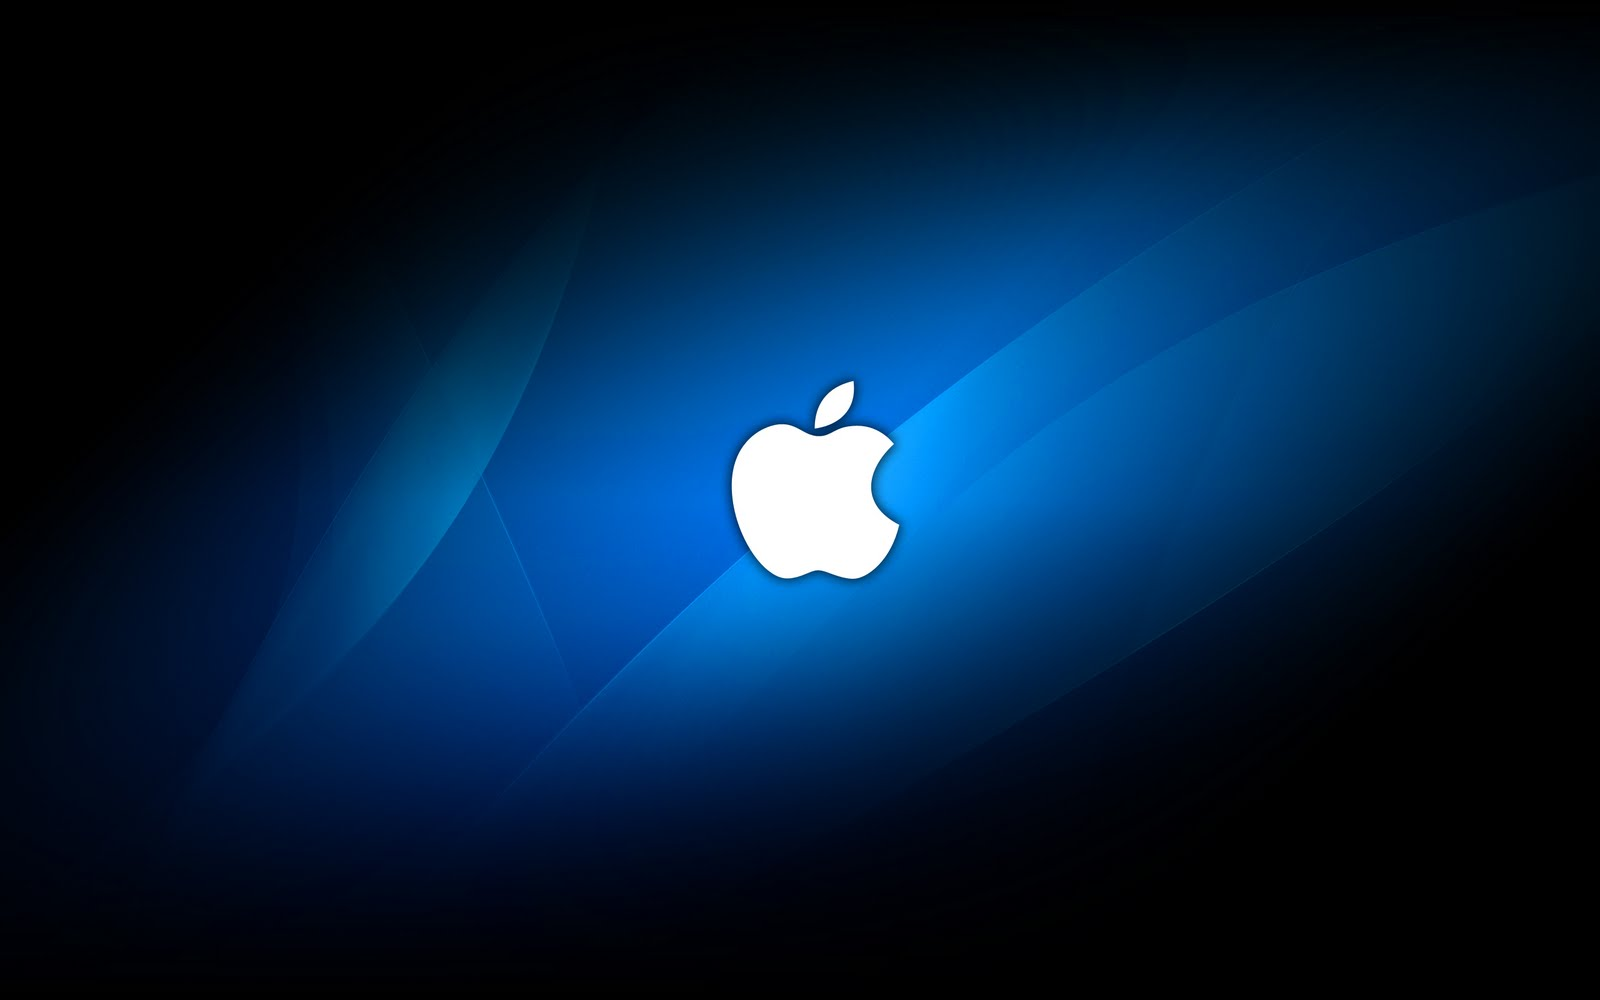 wallpaper apple for windows 7